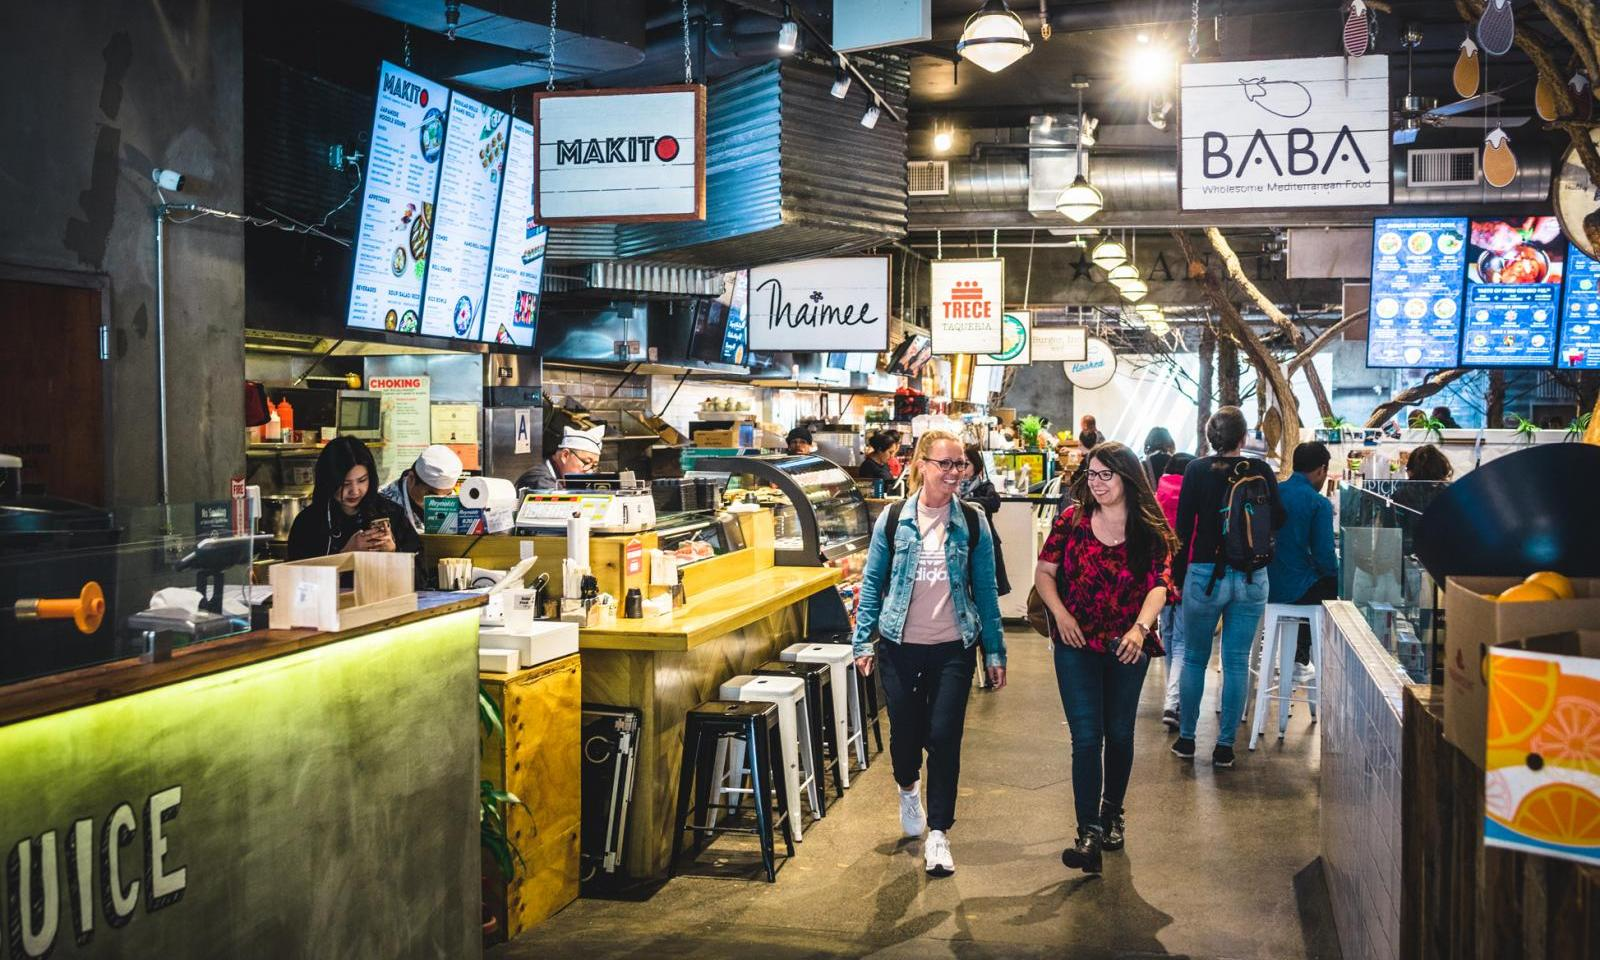 211dfdf94c0 Things to Do in the Meatpacking District